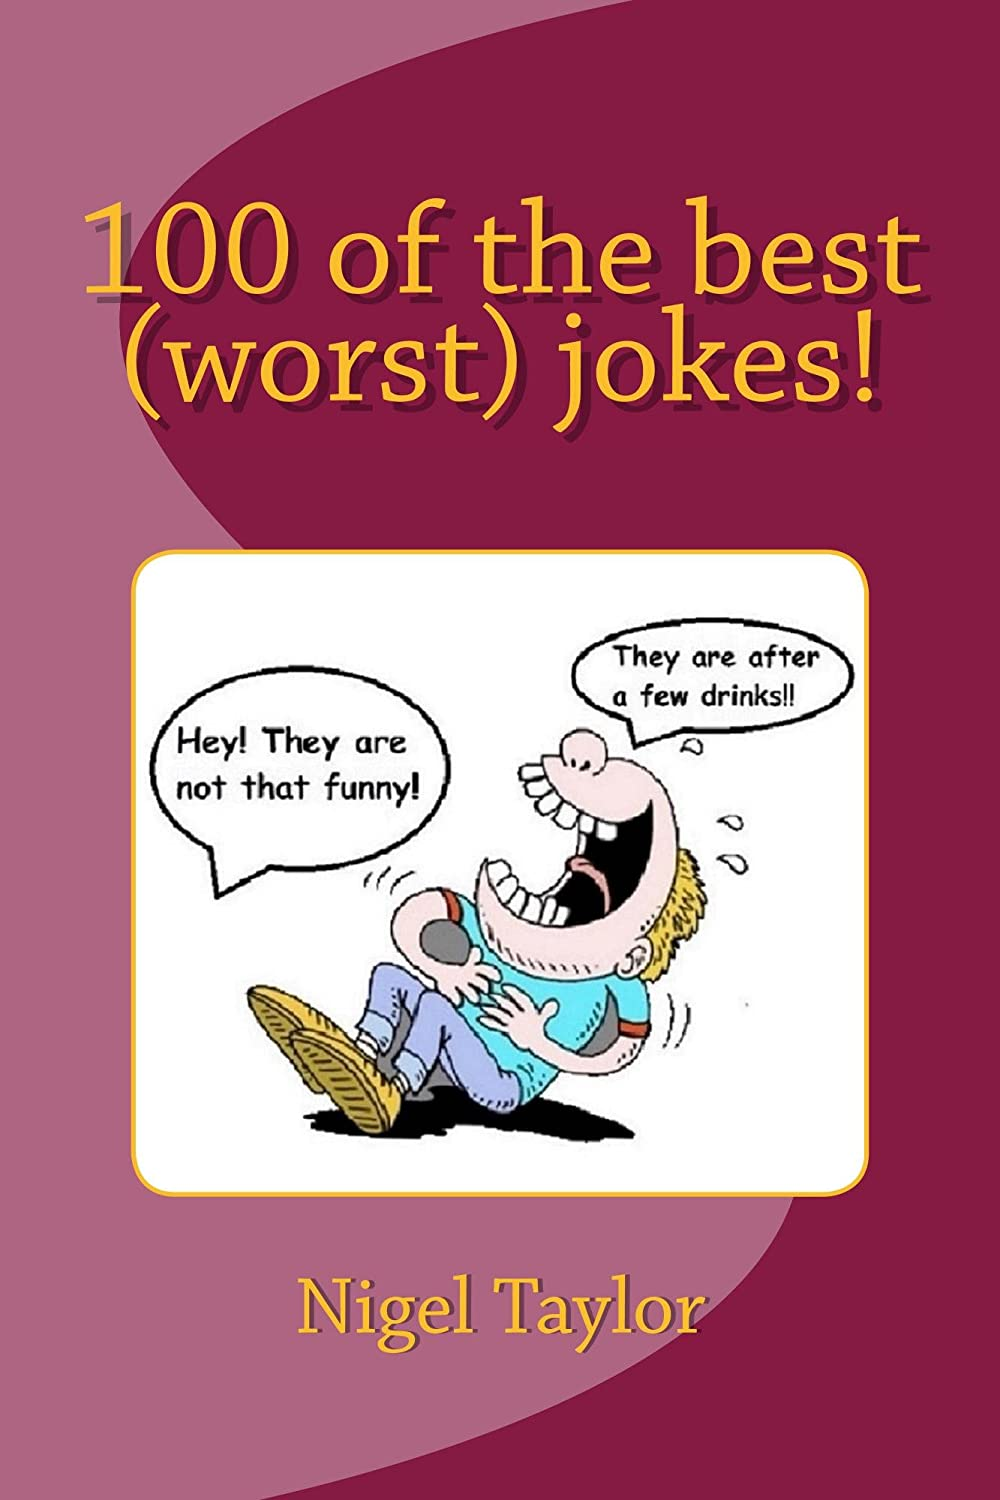 100 of the best (worst) jokes! (English Edition) eBook: Taylor ...